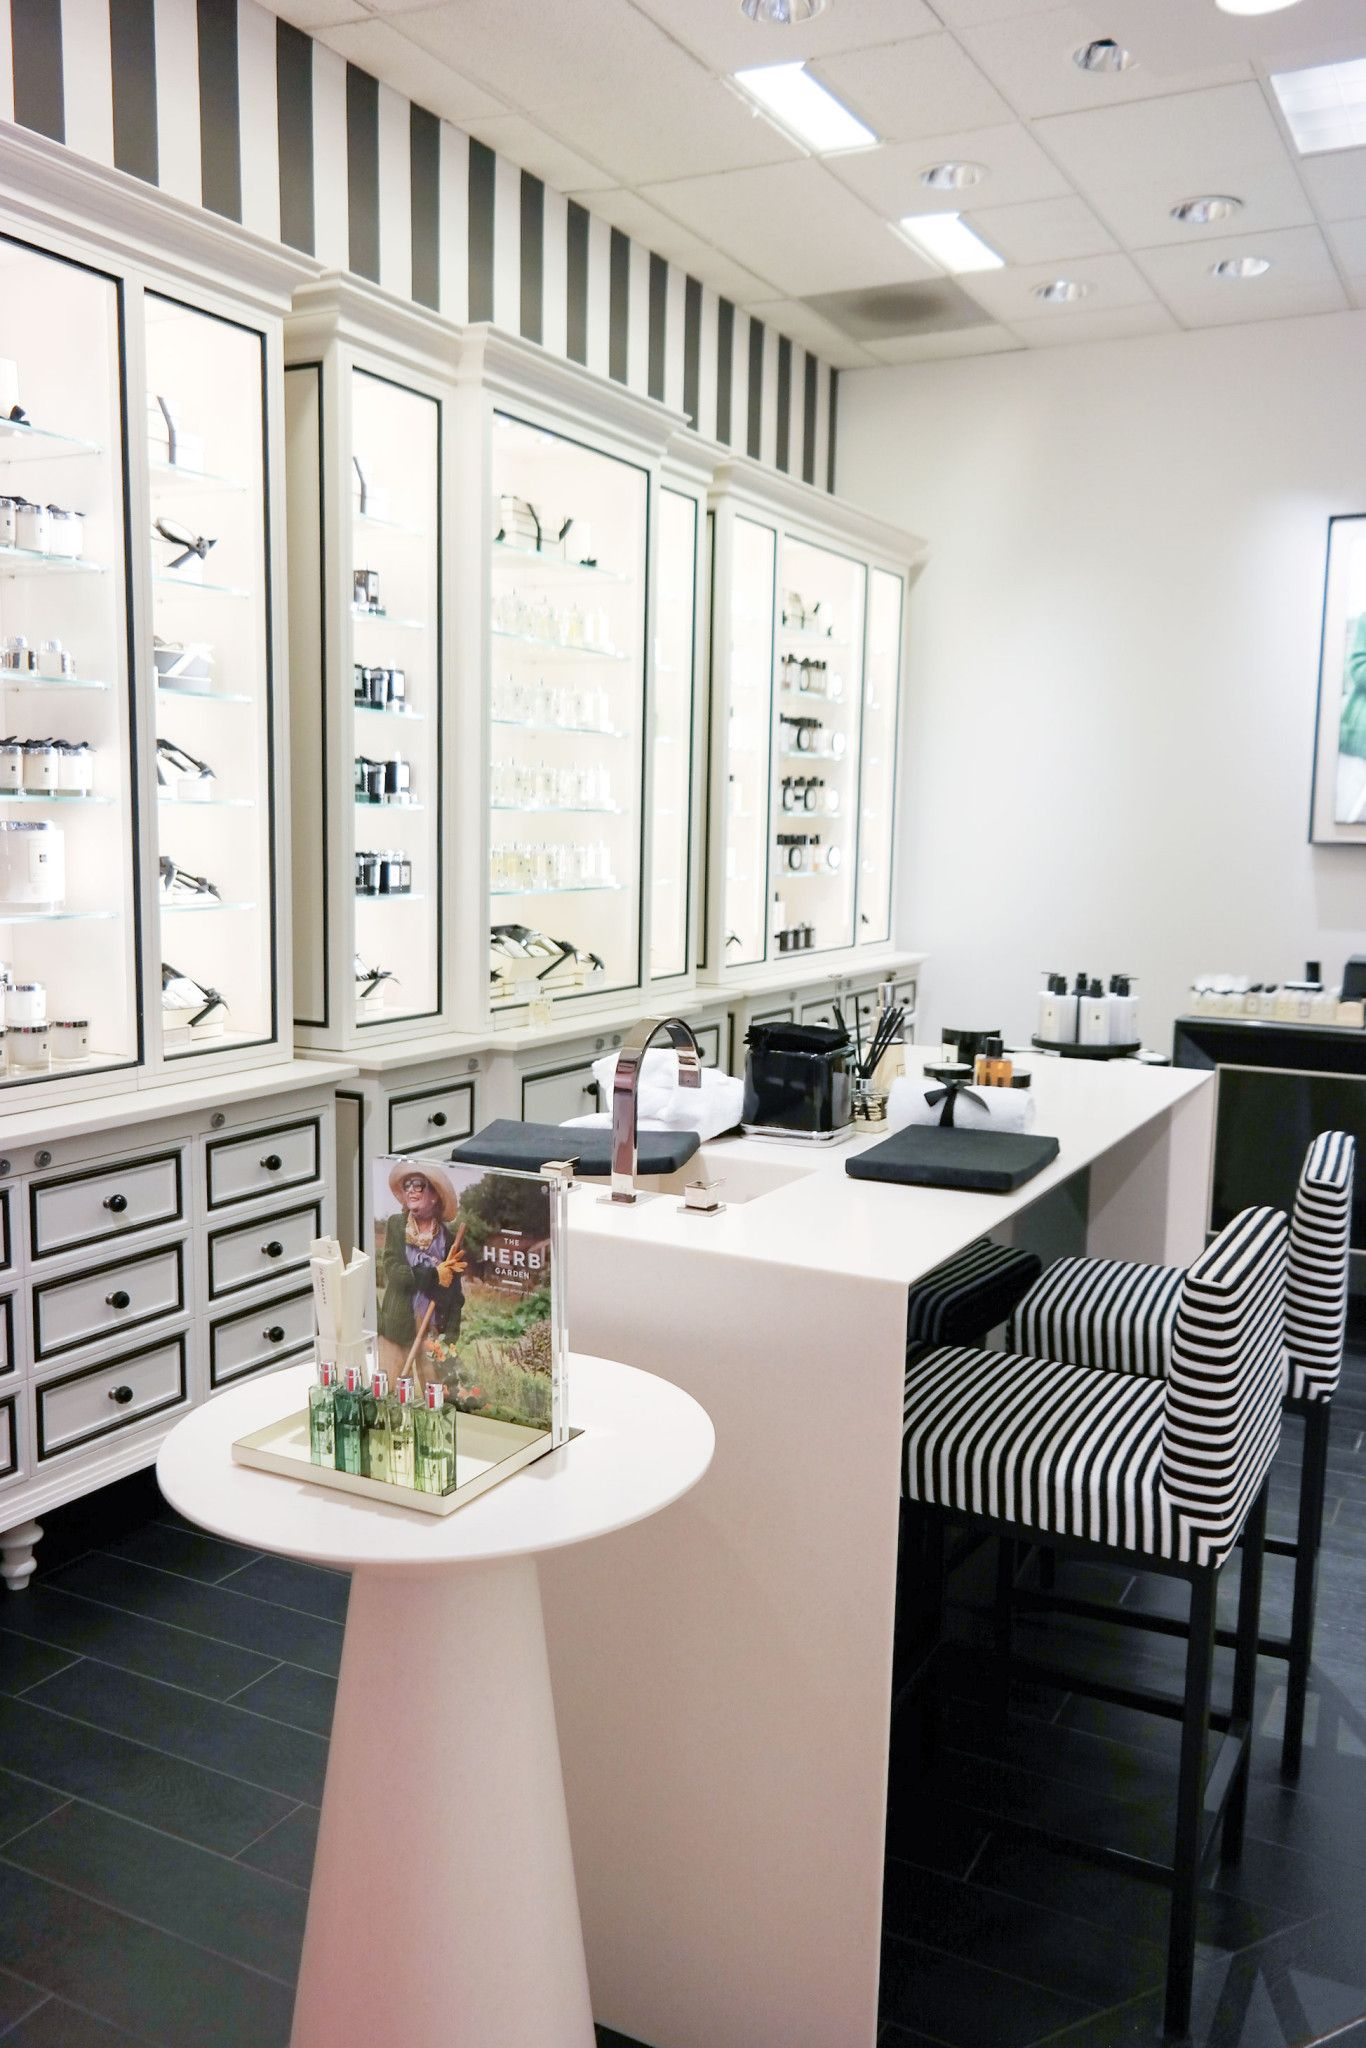 Exclusive A Peek Inside the new Jo Malone London Boutique at Macy's Memorial City Mall is part of Jo malone, Jo malone store, London boutique, Retail store design, Store interiors, Jo malone london - Jo Malone London is thrilled to be having their grand launch party today at their second location inside Macy's (the first one is in Herald